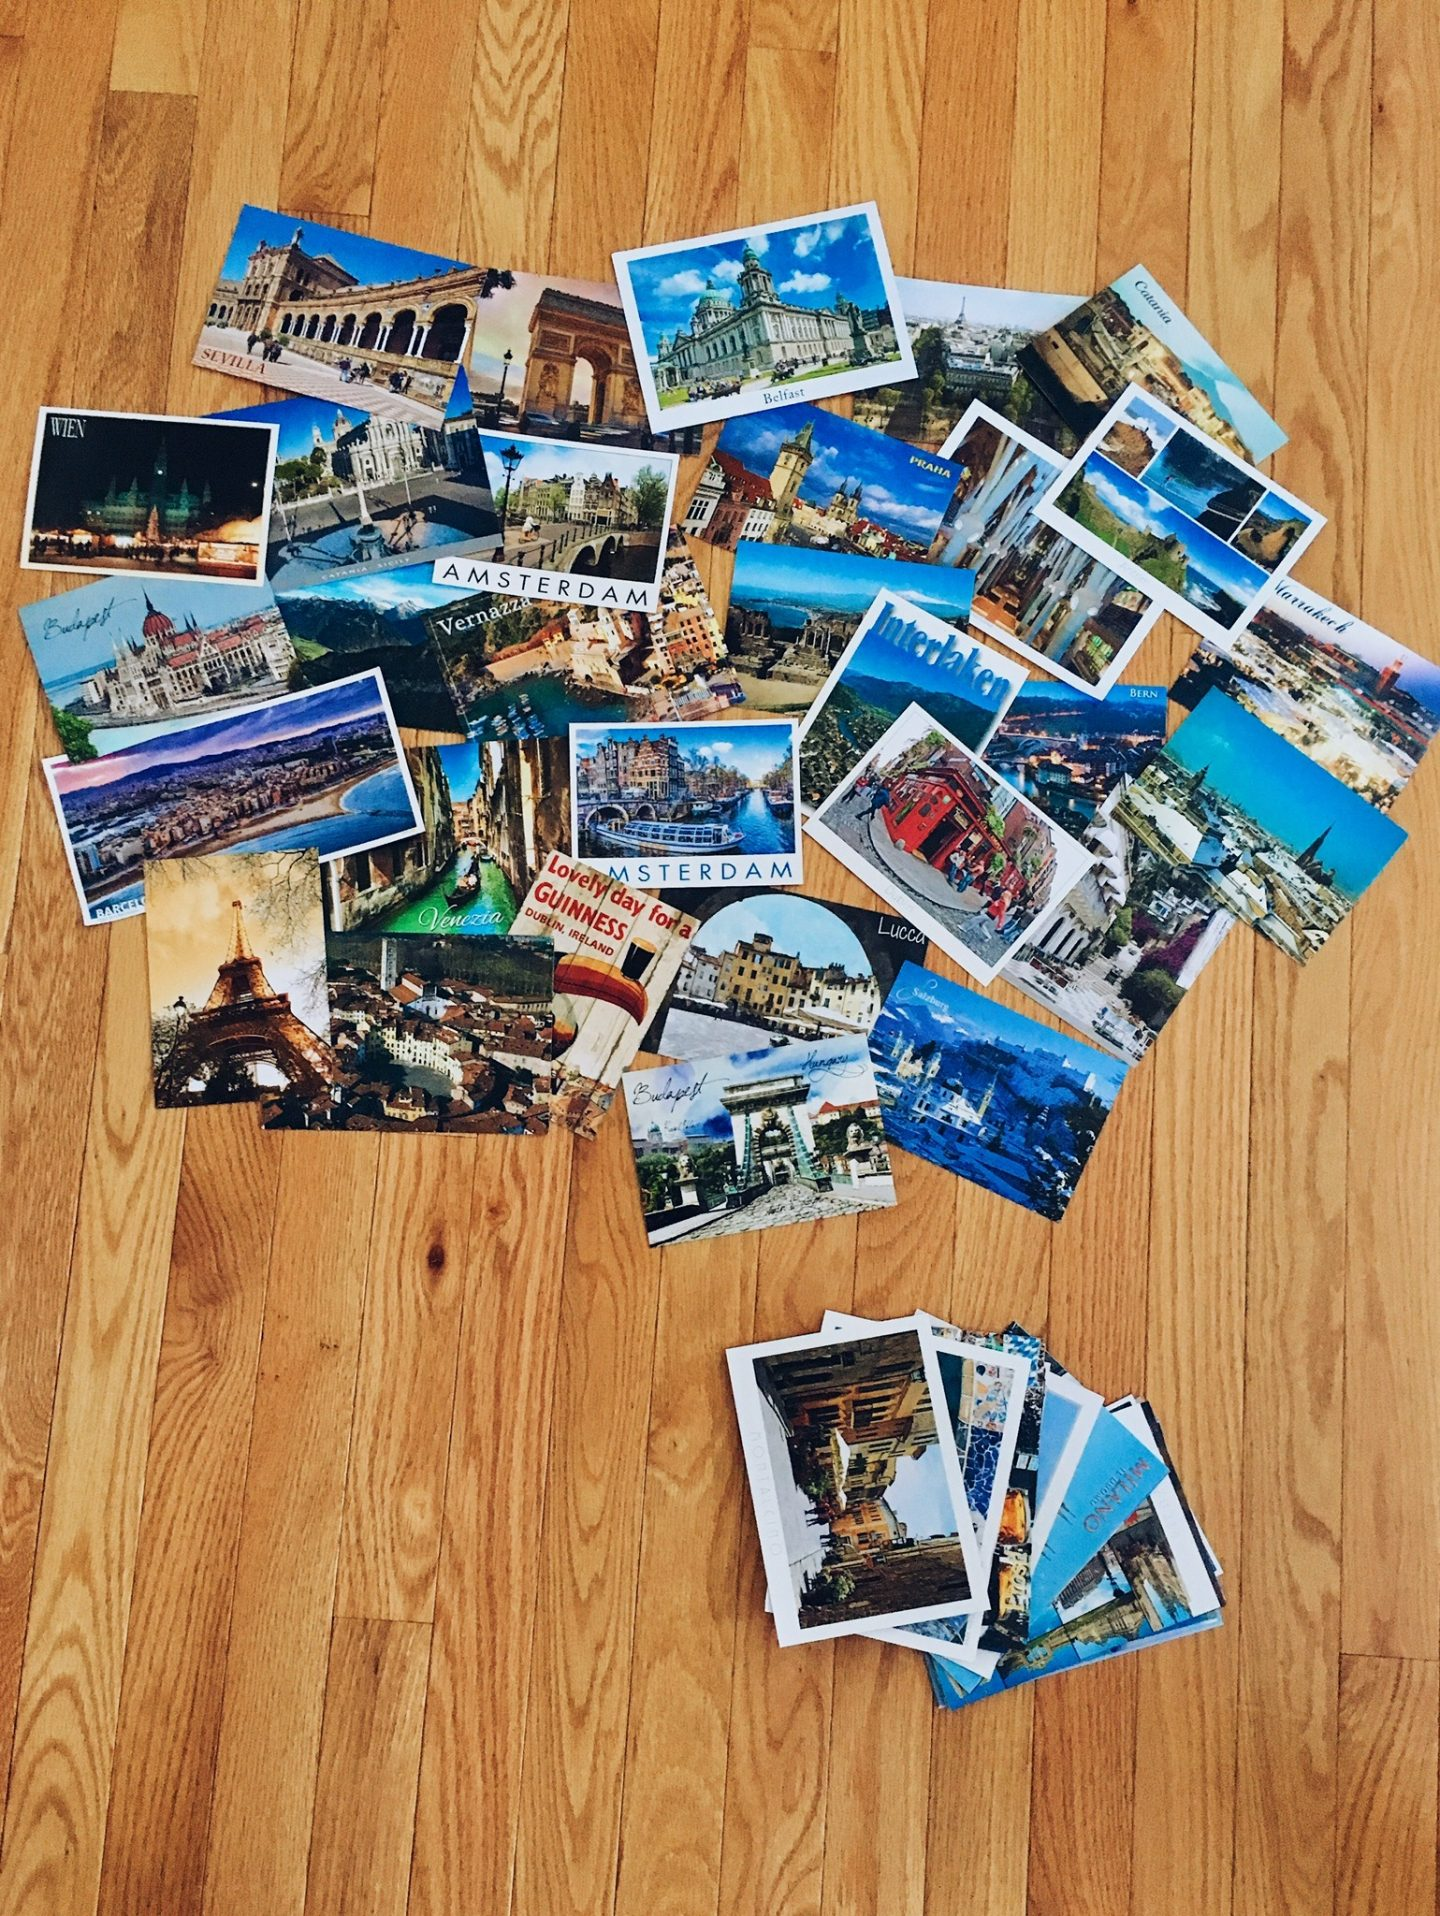 My full postcard collection!